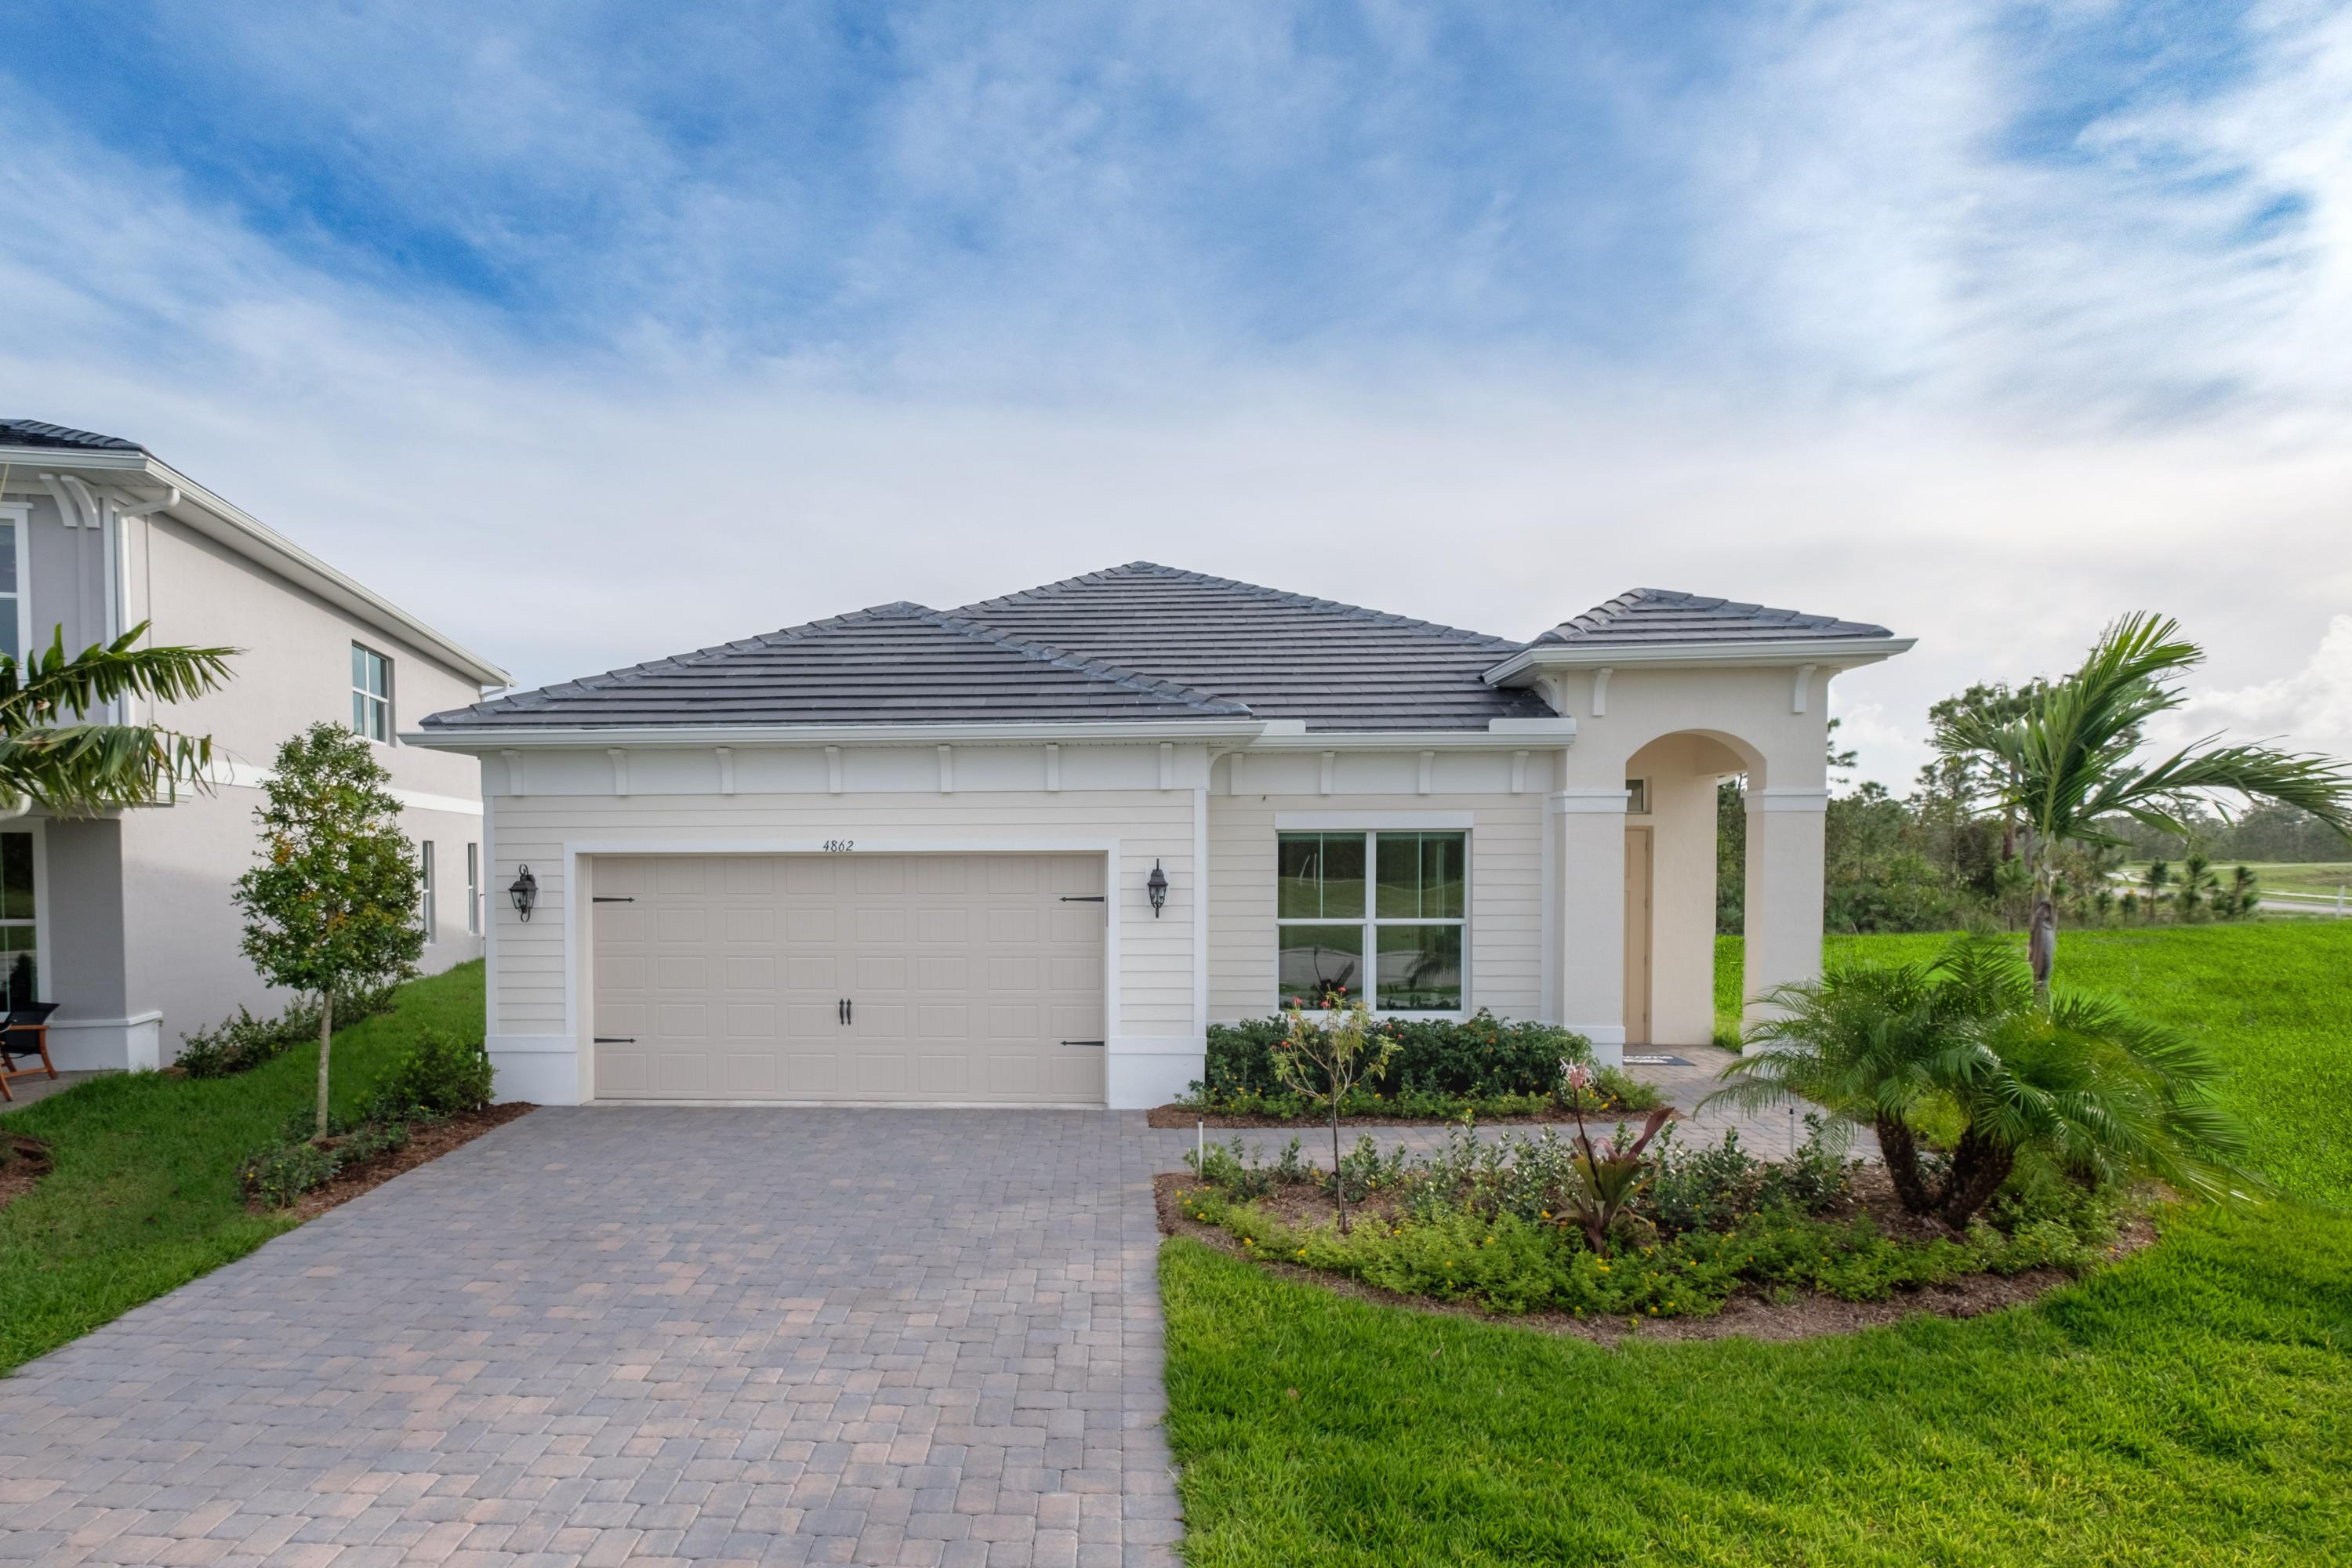 897 Sterling Pine Place 33470 - One of Loxahatchee Homes for Sale